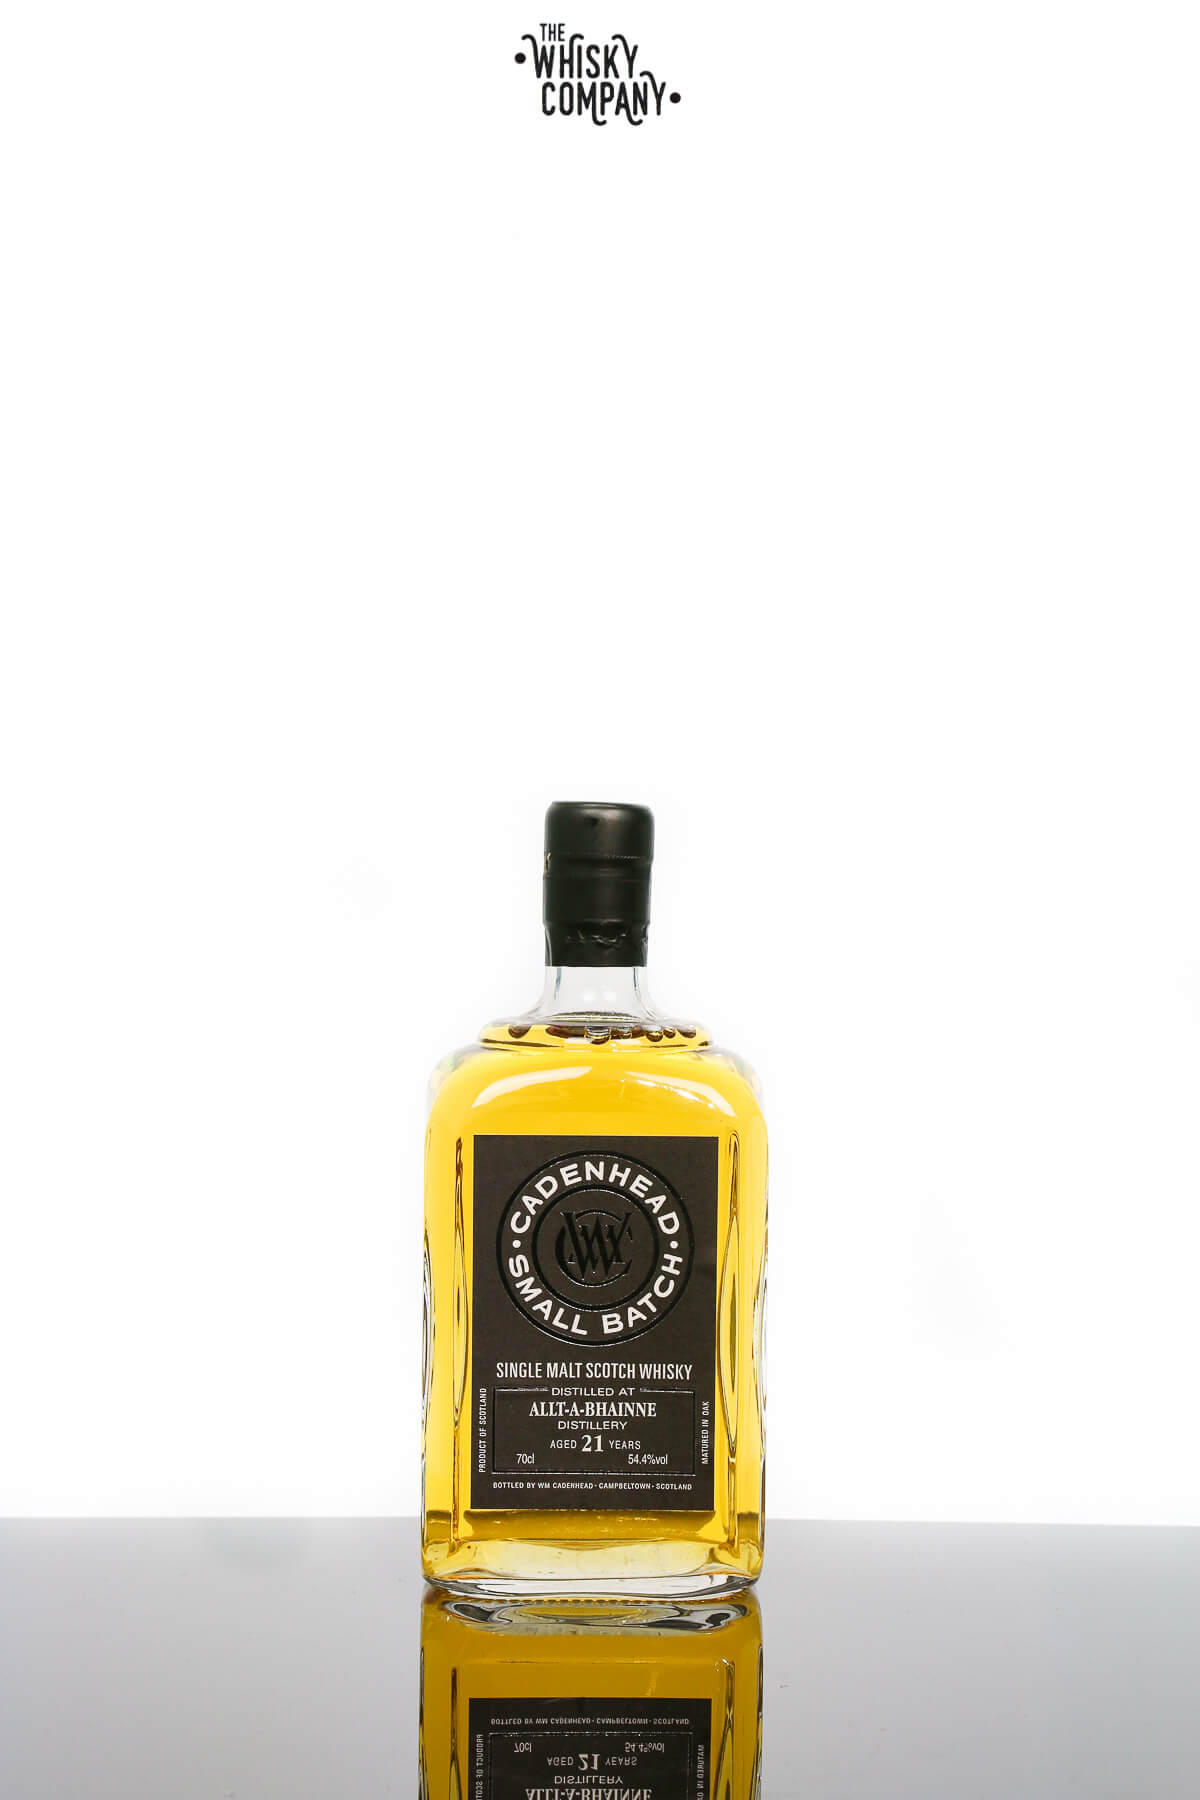 Cadenheads Allt-A-Bhainne Aged 21 Years Single Malt Scotch Whisky